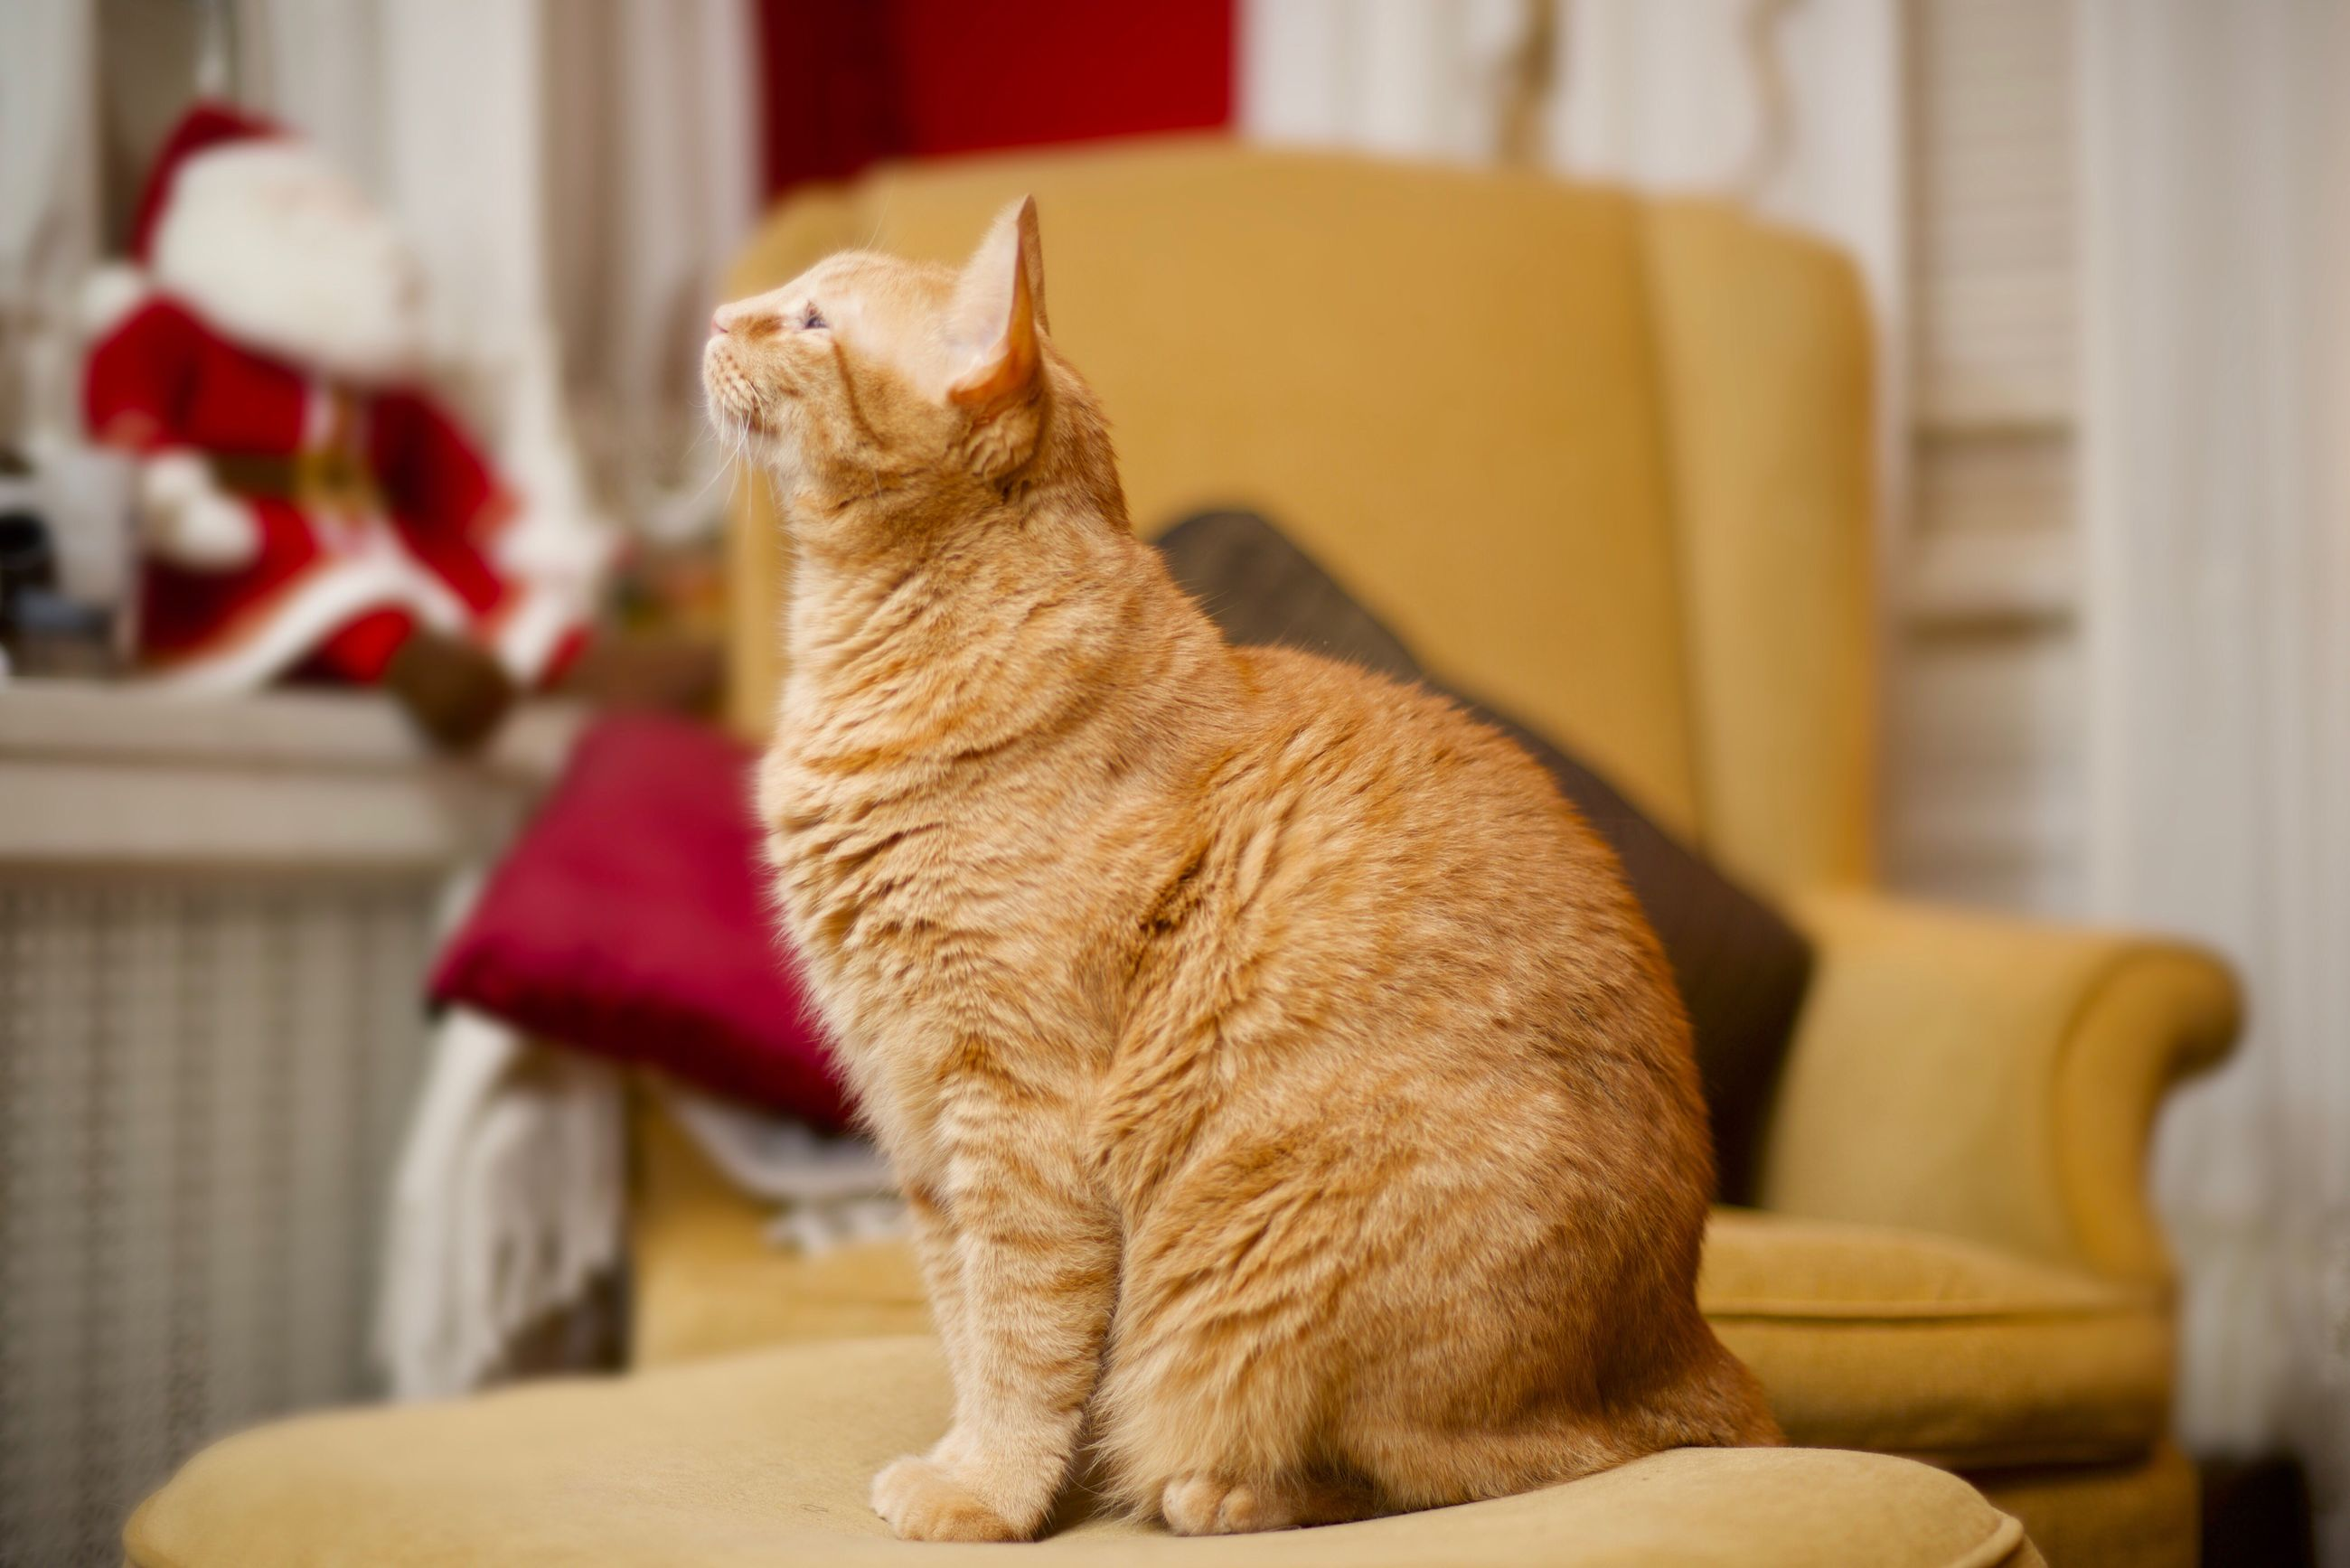 pets, one animal, domestic animals, mammal, domestic cat, animal themes, indoors, home interior, feline, no people, cat, table, close-up, day